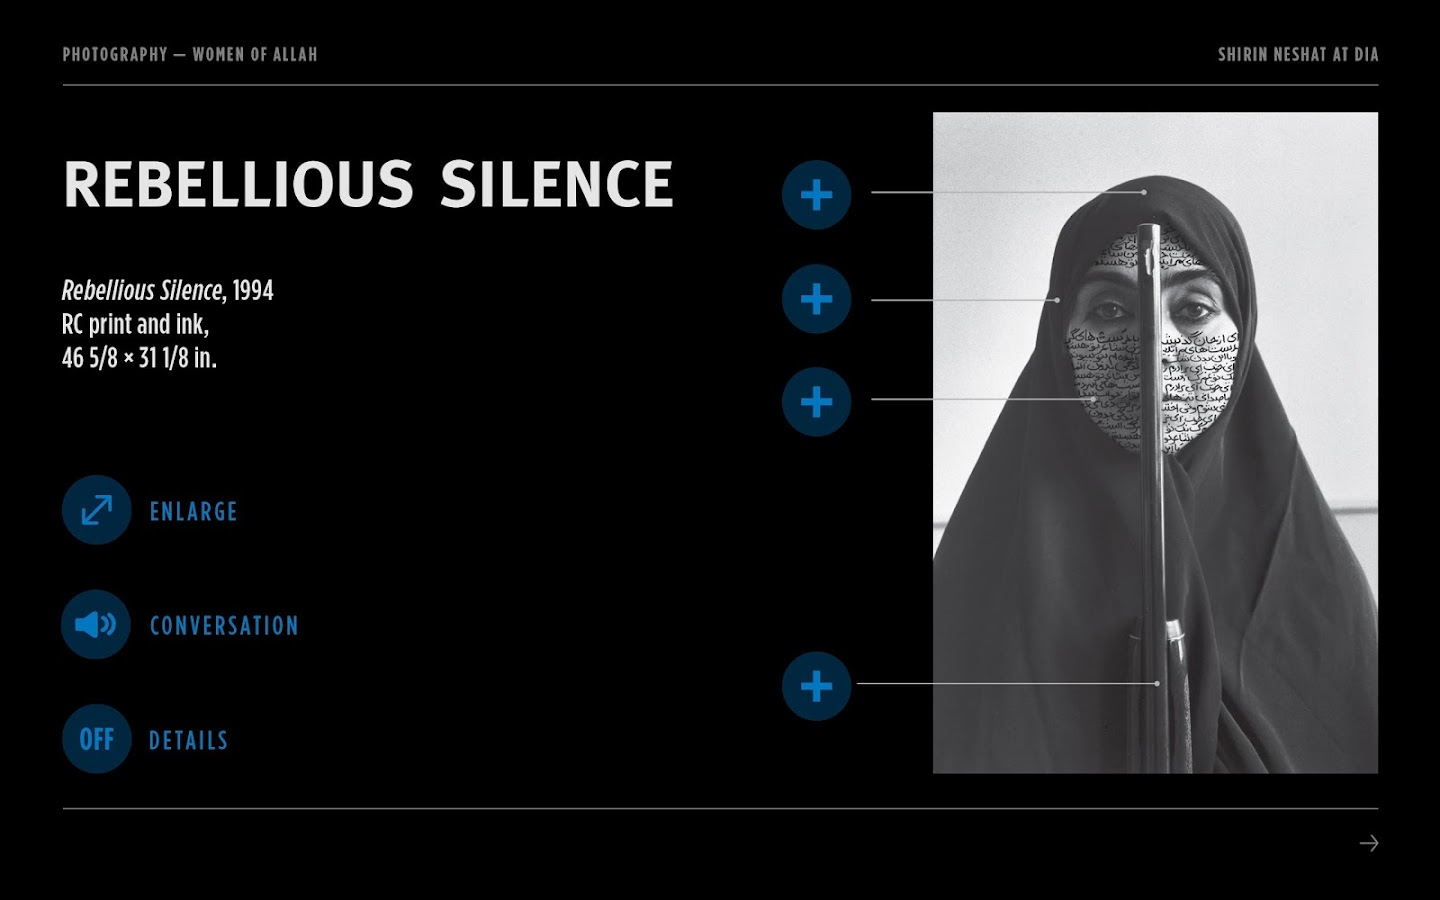 Shirin Neshat at the DIA - screenshot